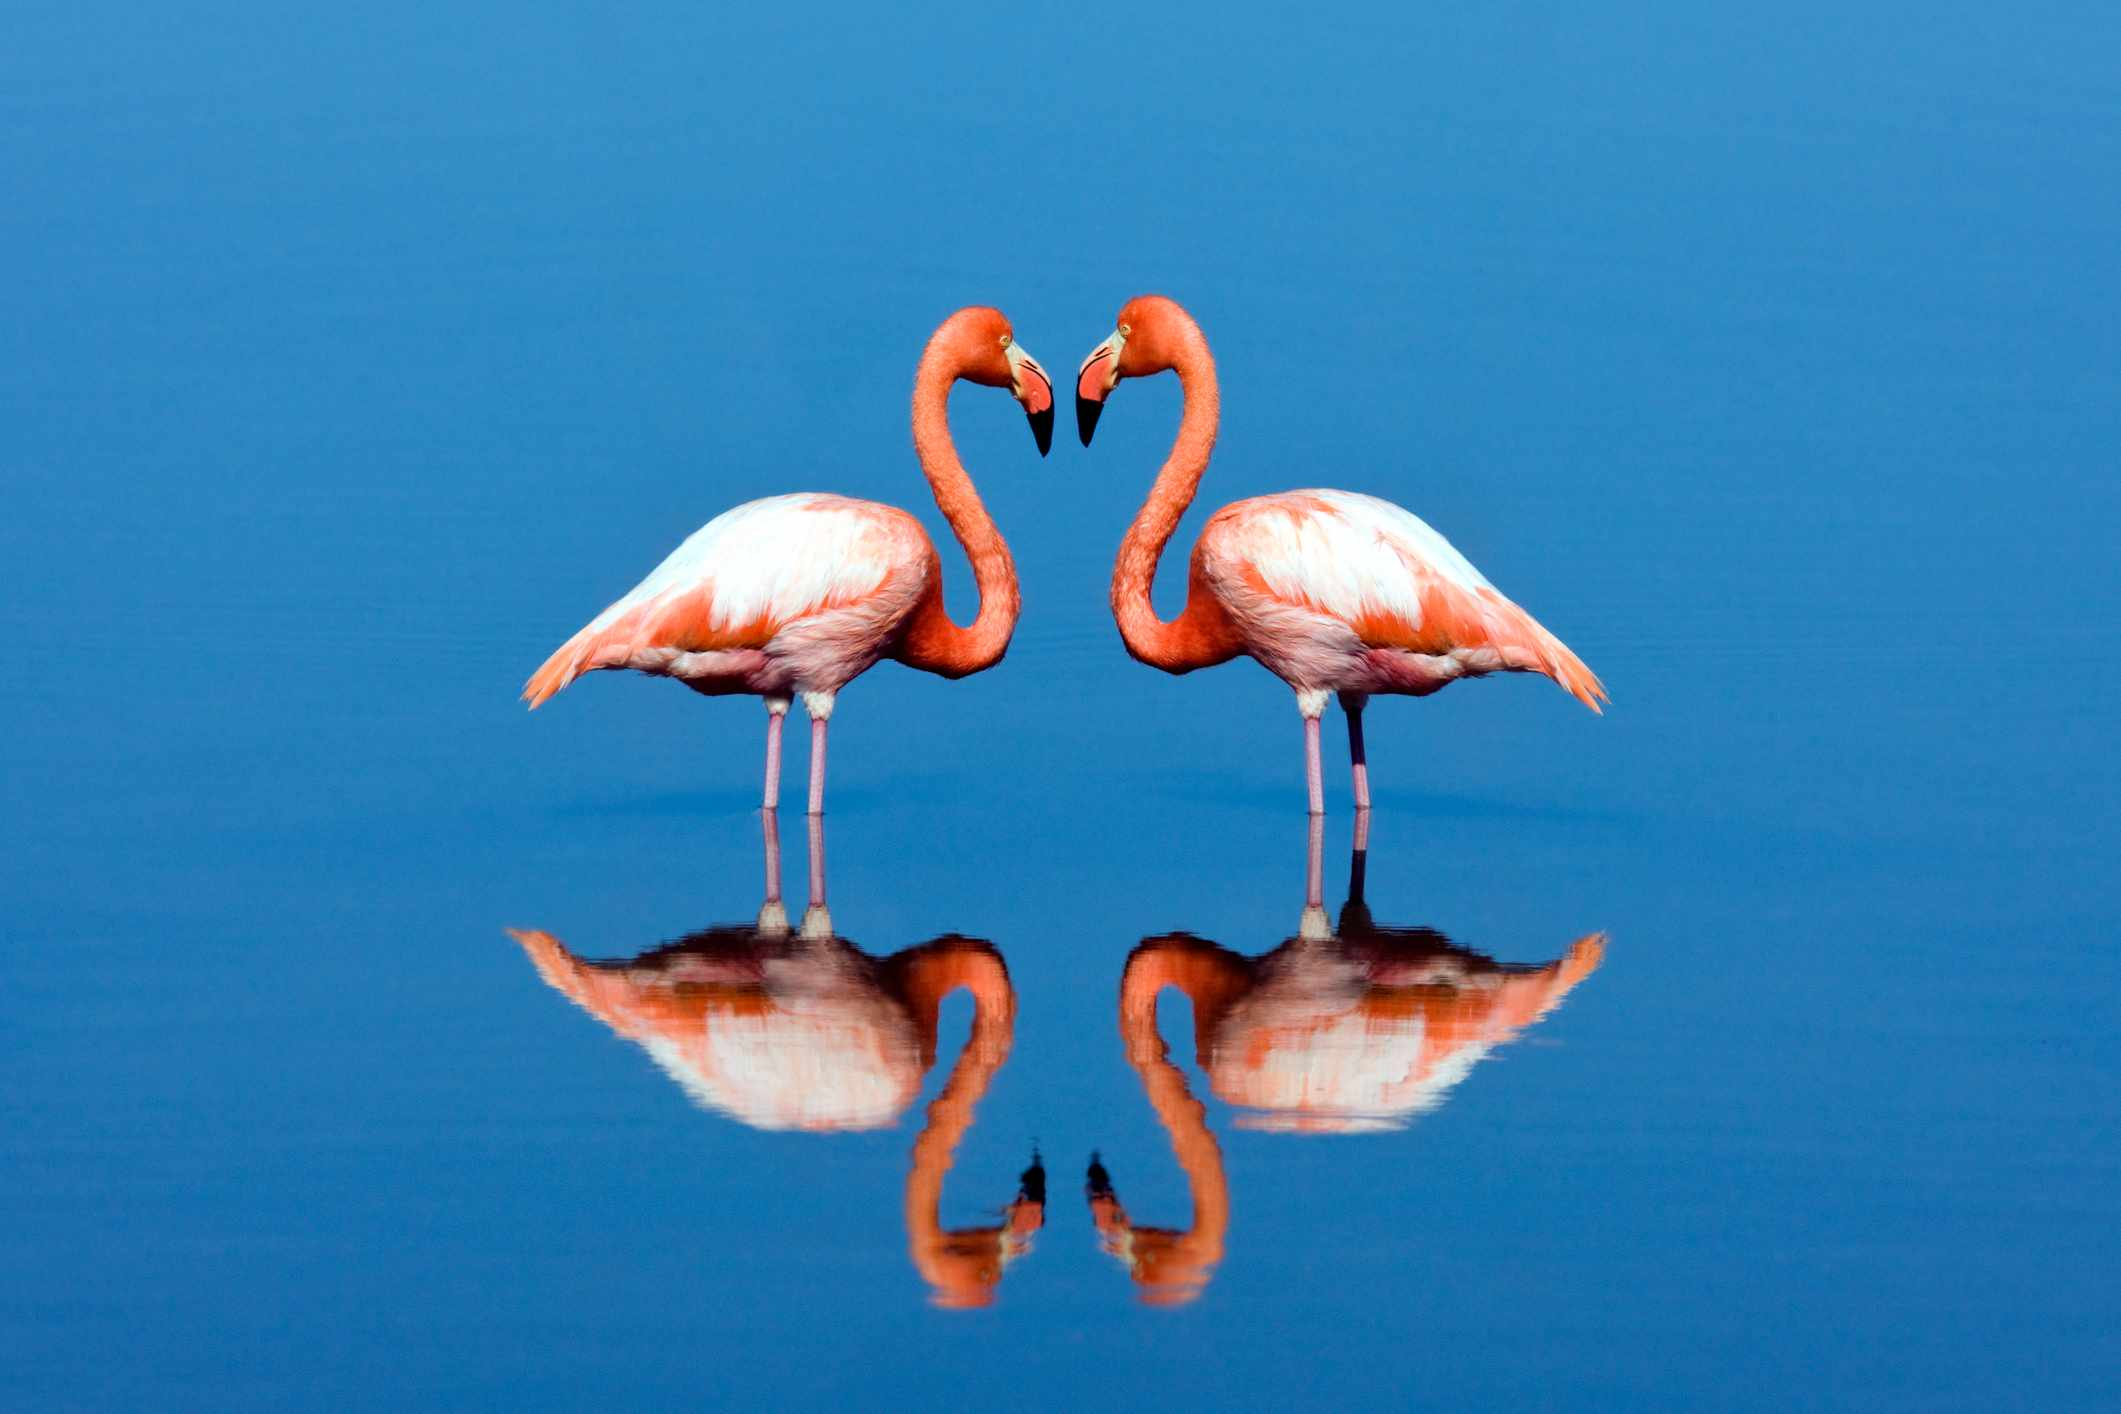 Pair of greater flamingos (Phoenicopterus ruber) facing each other to form a heart shape on a freshwater lagoon on Floreana Island in the Galapagos Islands. © Steve Allen/Getty